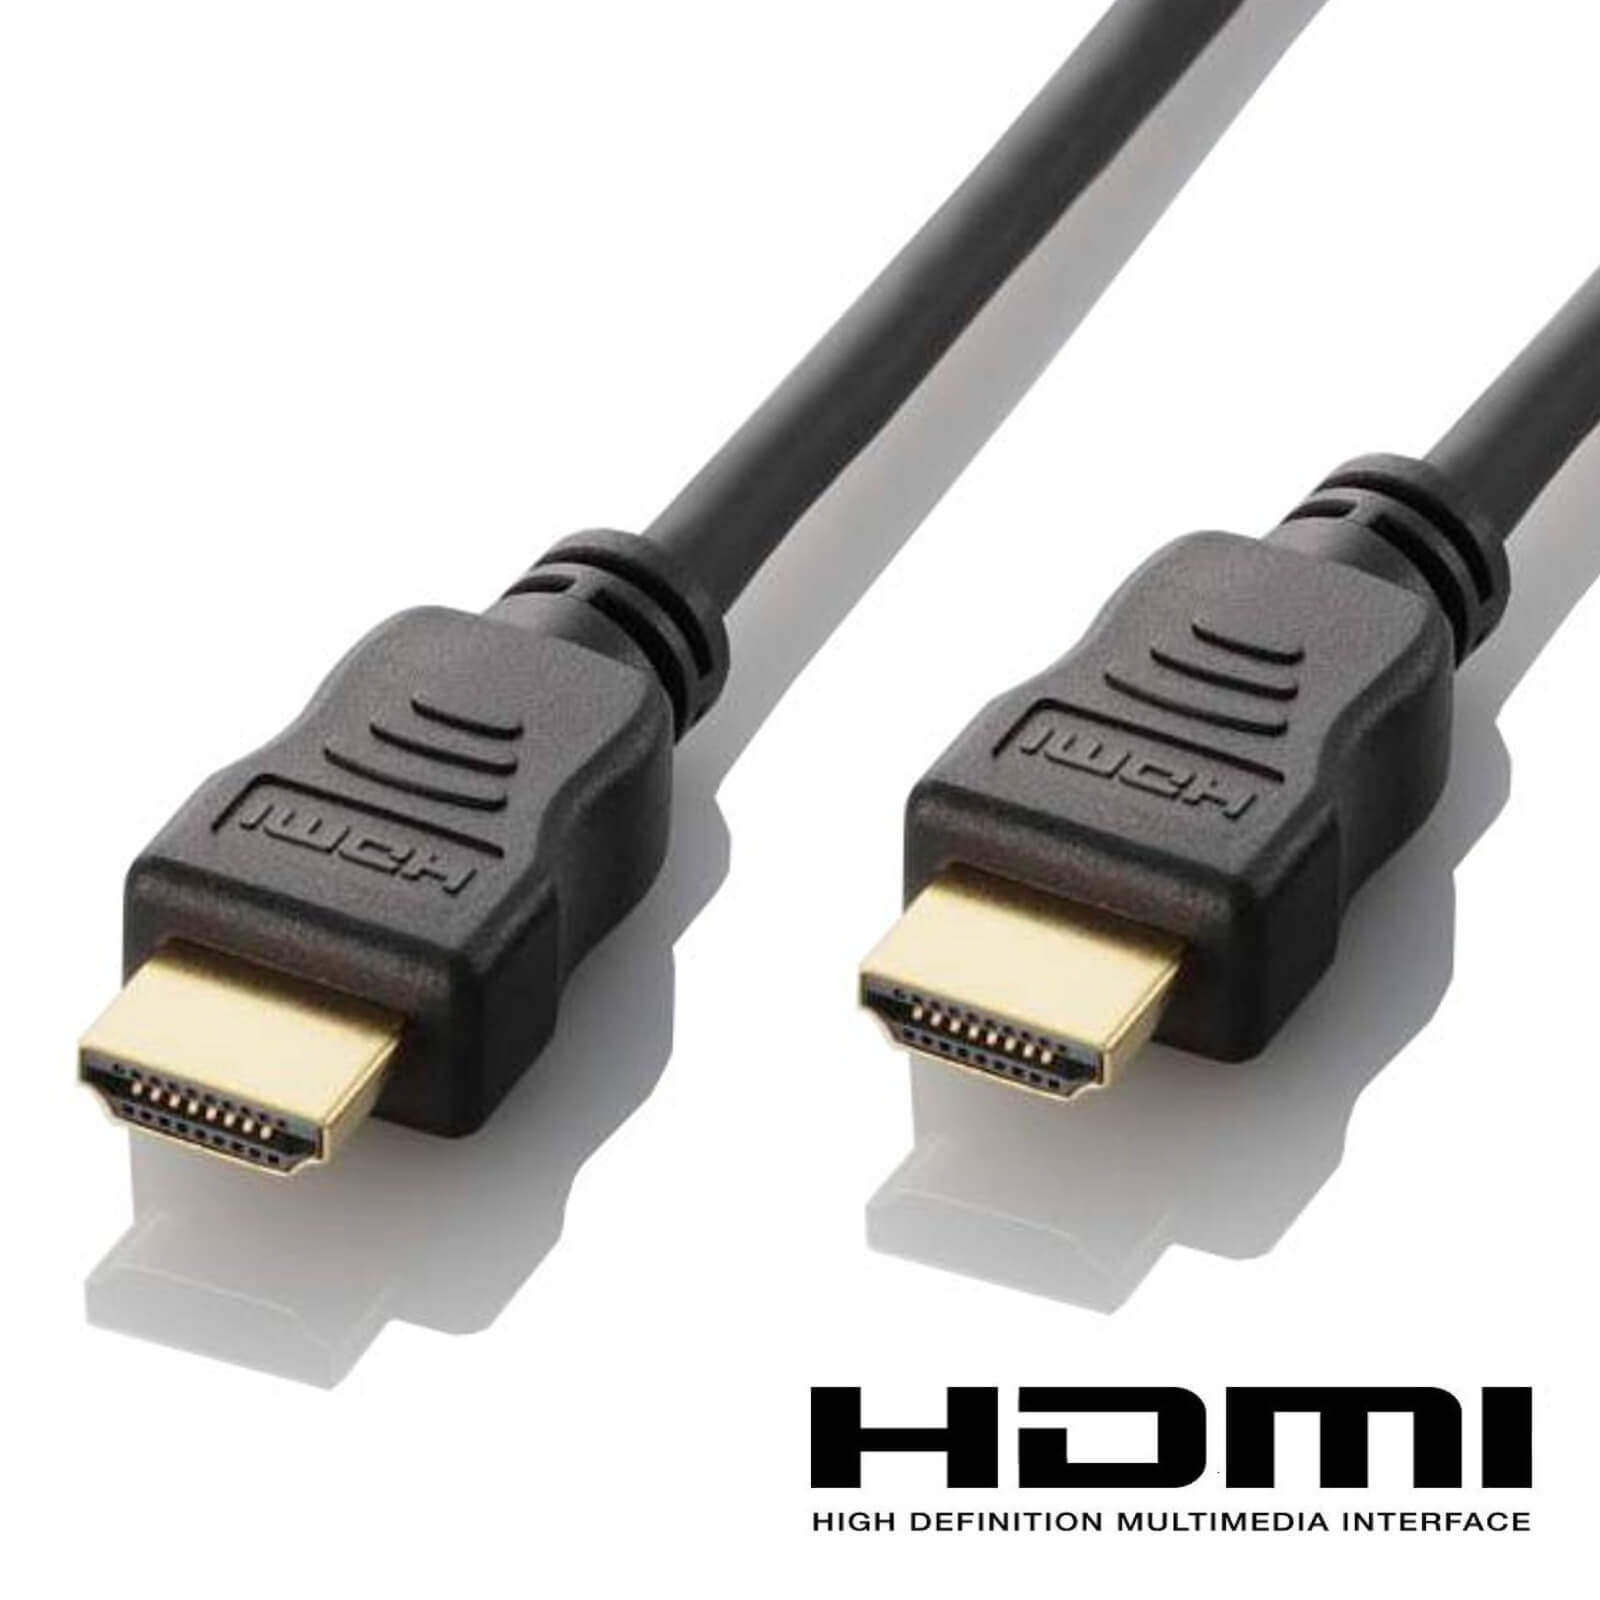 Lenovo Y700 17 15 Hdmi To 4k Ultra Hd Tv 2m Gold Lead Laptop Connections For Wiring Diagram Wire Cord Cable Dorothys Home